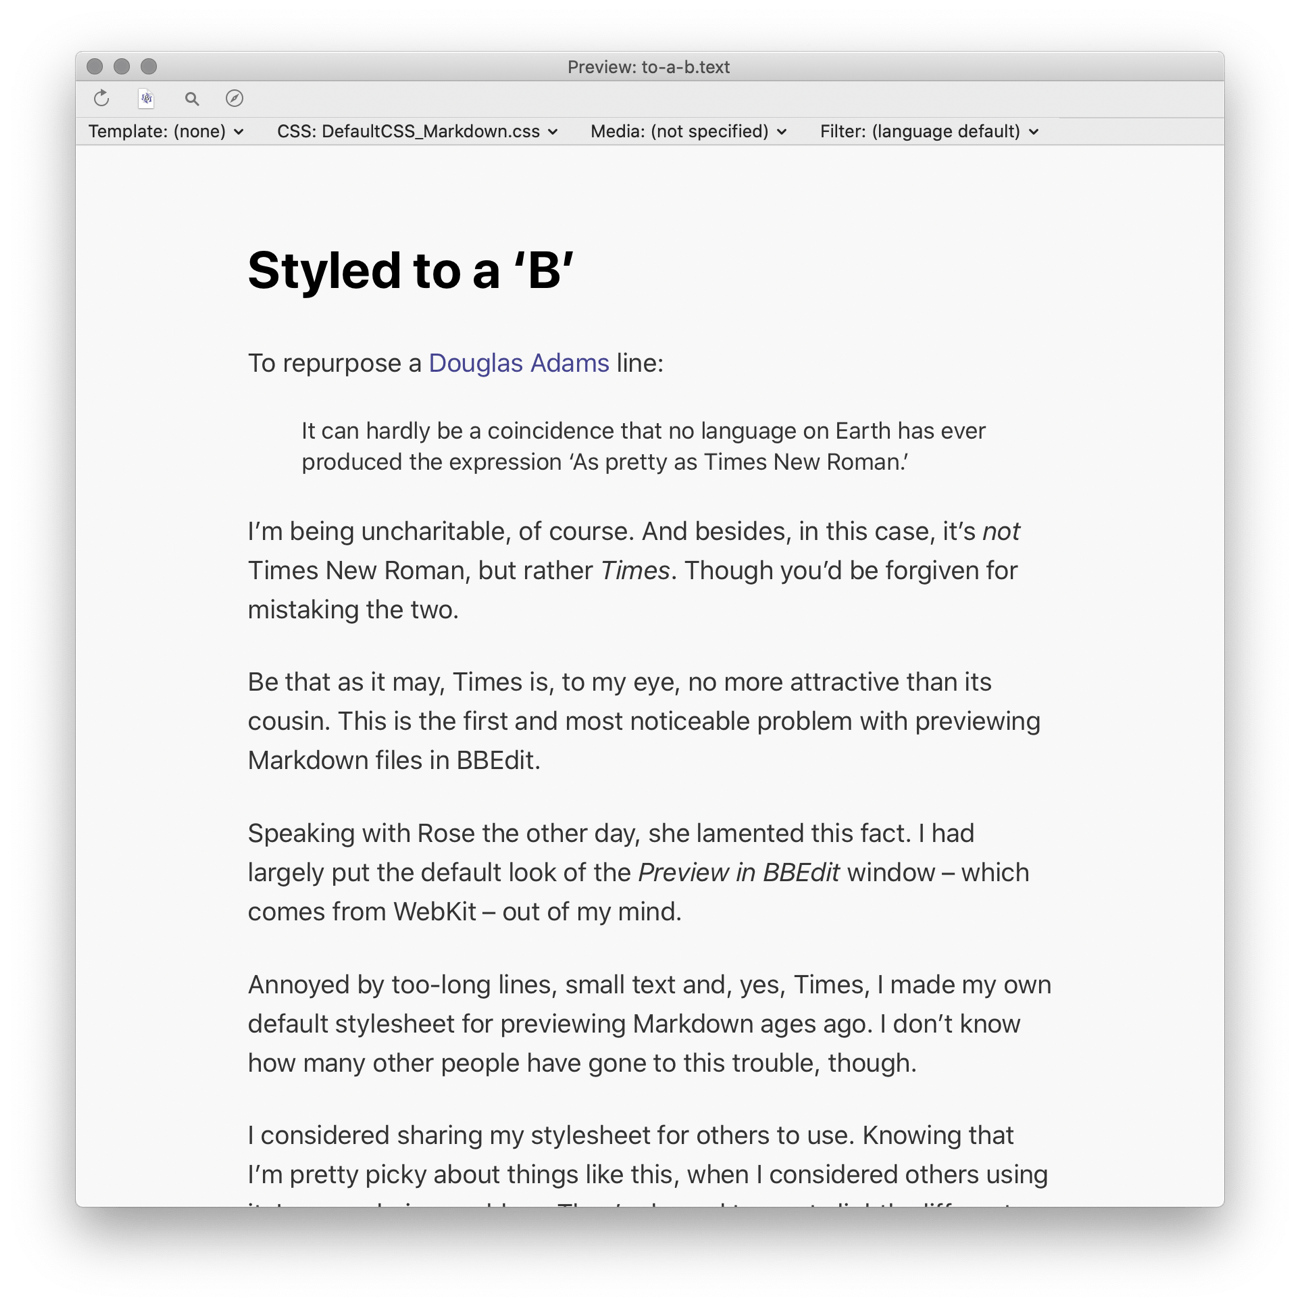 Screenshot of this article previewed using the BBStylish stylesheet in the 'Preview in BBEdit' window.